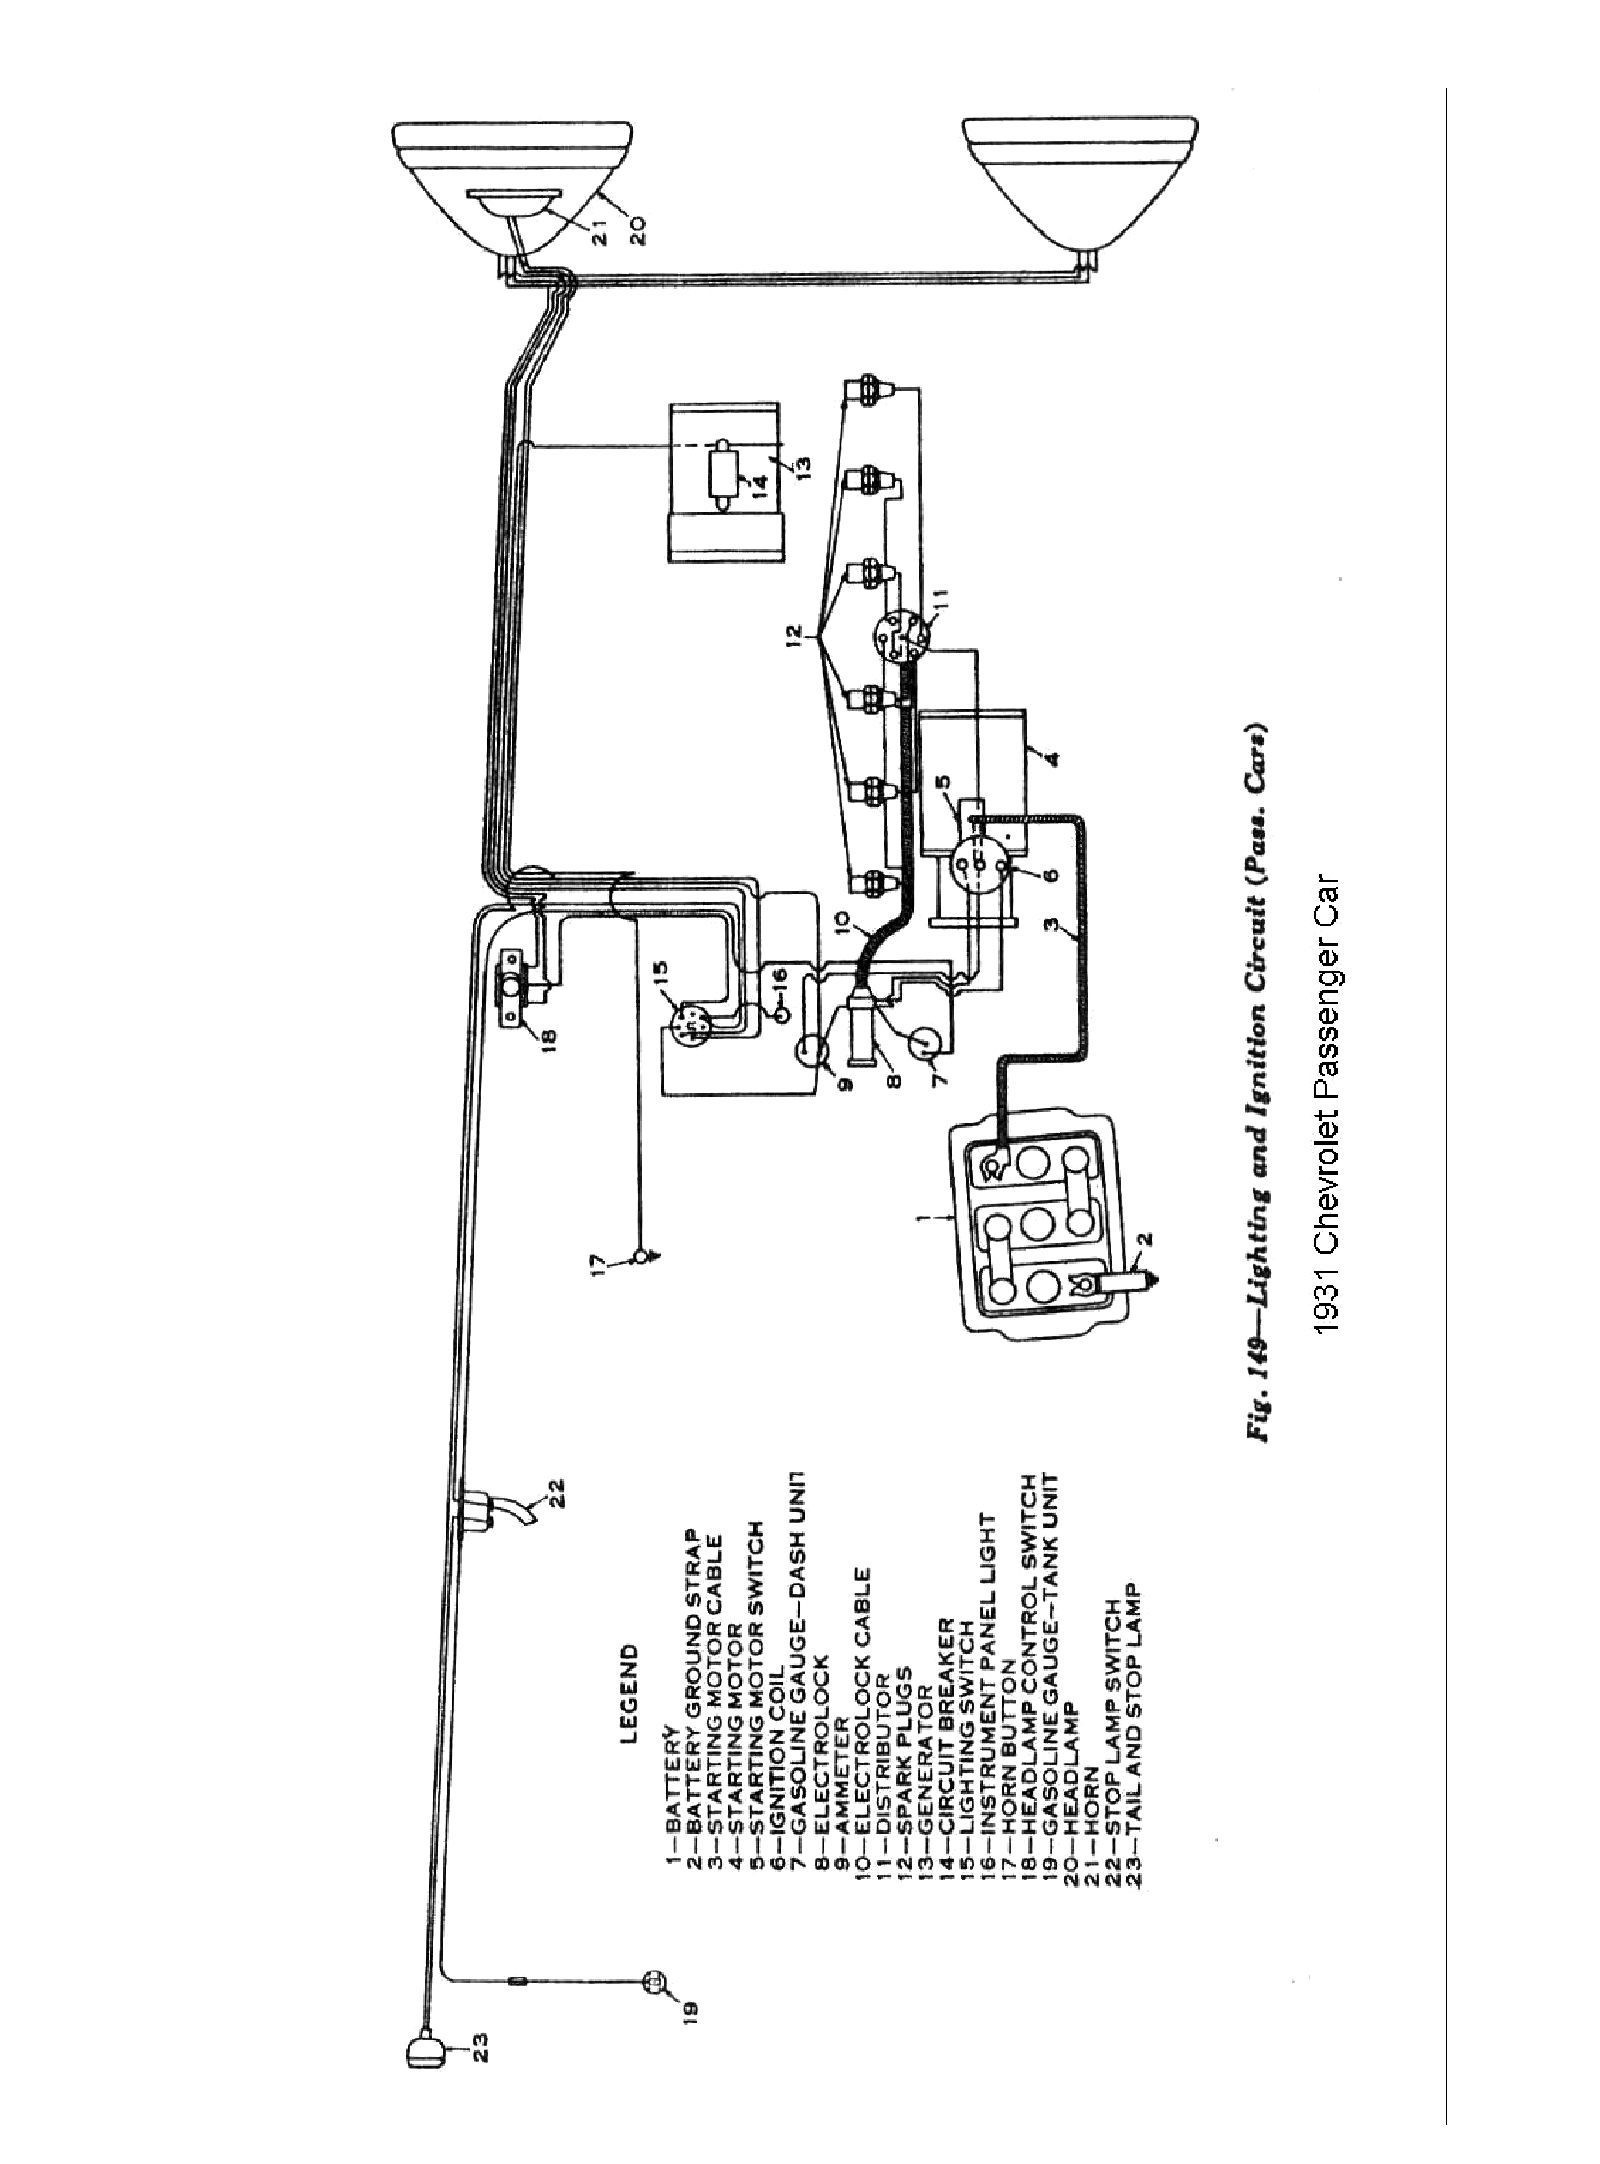 chevy 3.5 starter, chevy 3.5 motor, chevy 3.5 oil pan, chevy 3.5 belt, chevy 3.5 engine, chevy 3.5 camshaft, on chevy 5 3 injector wiring diagram